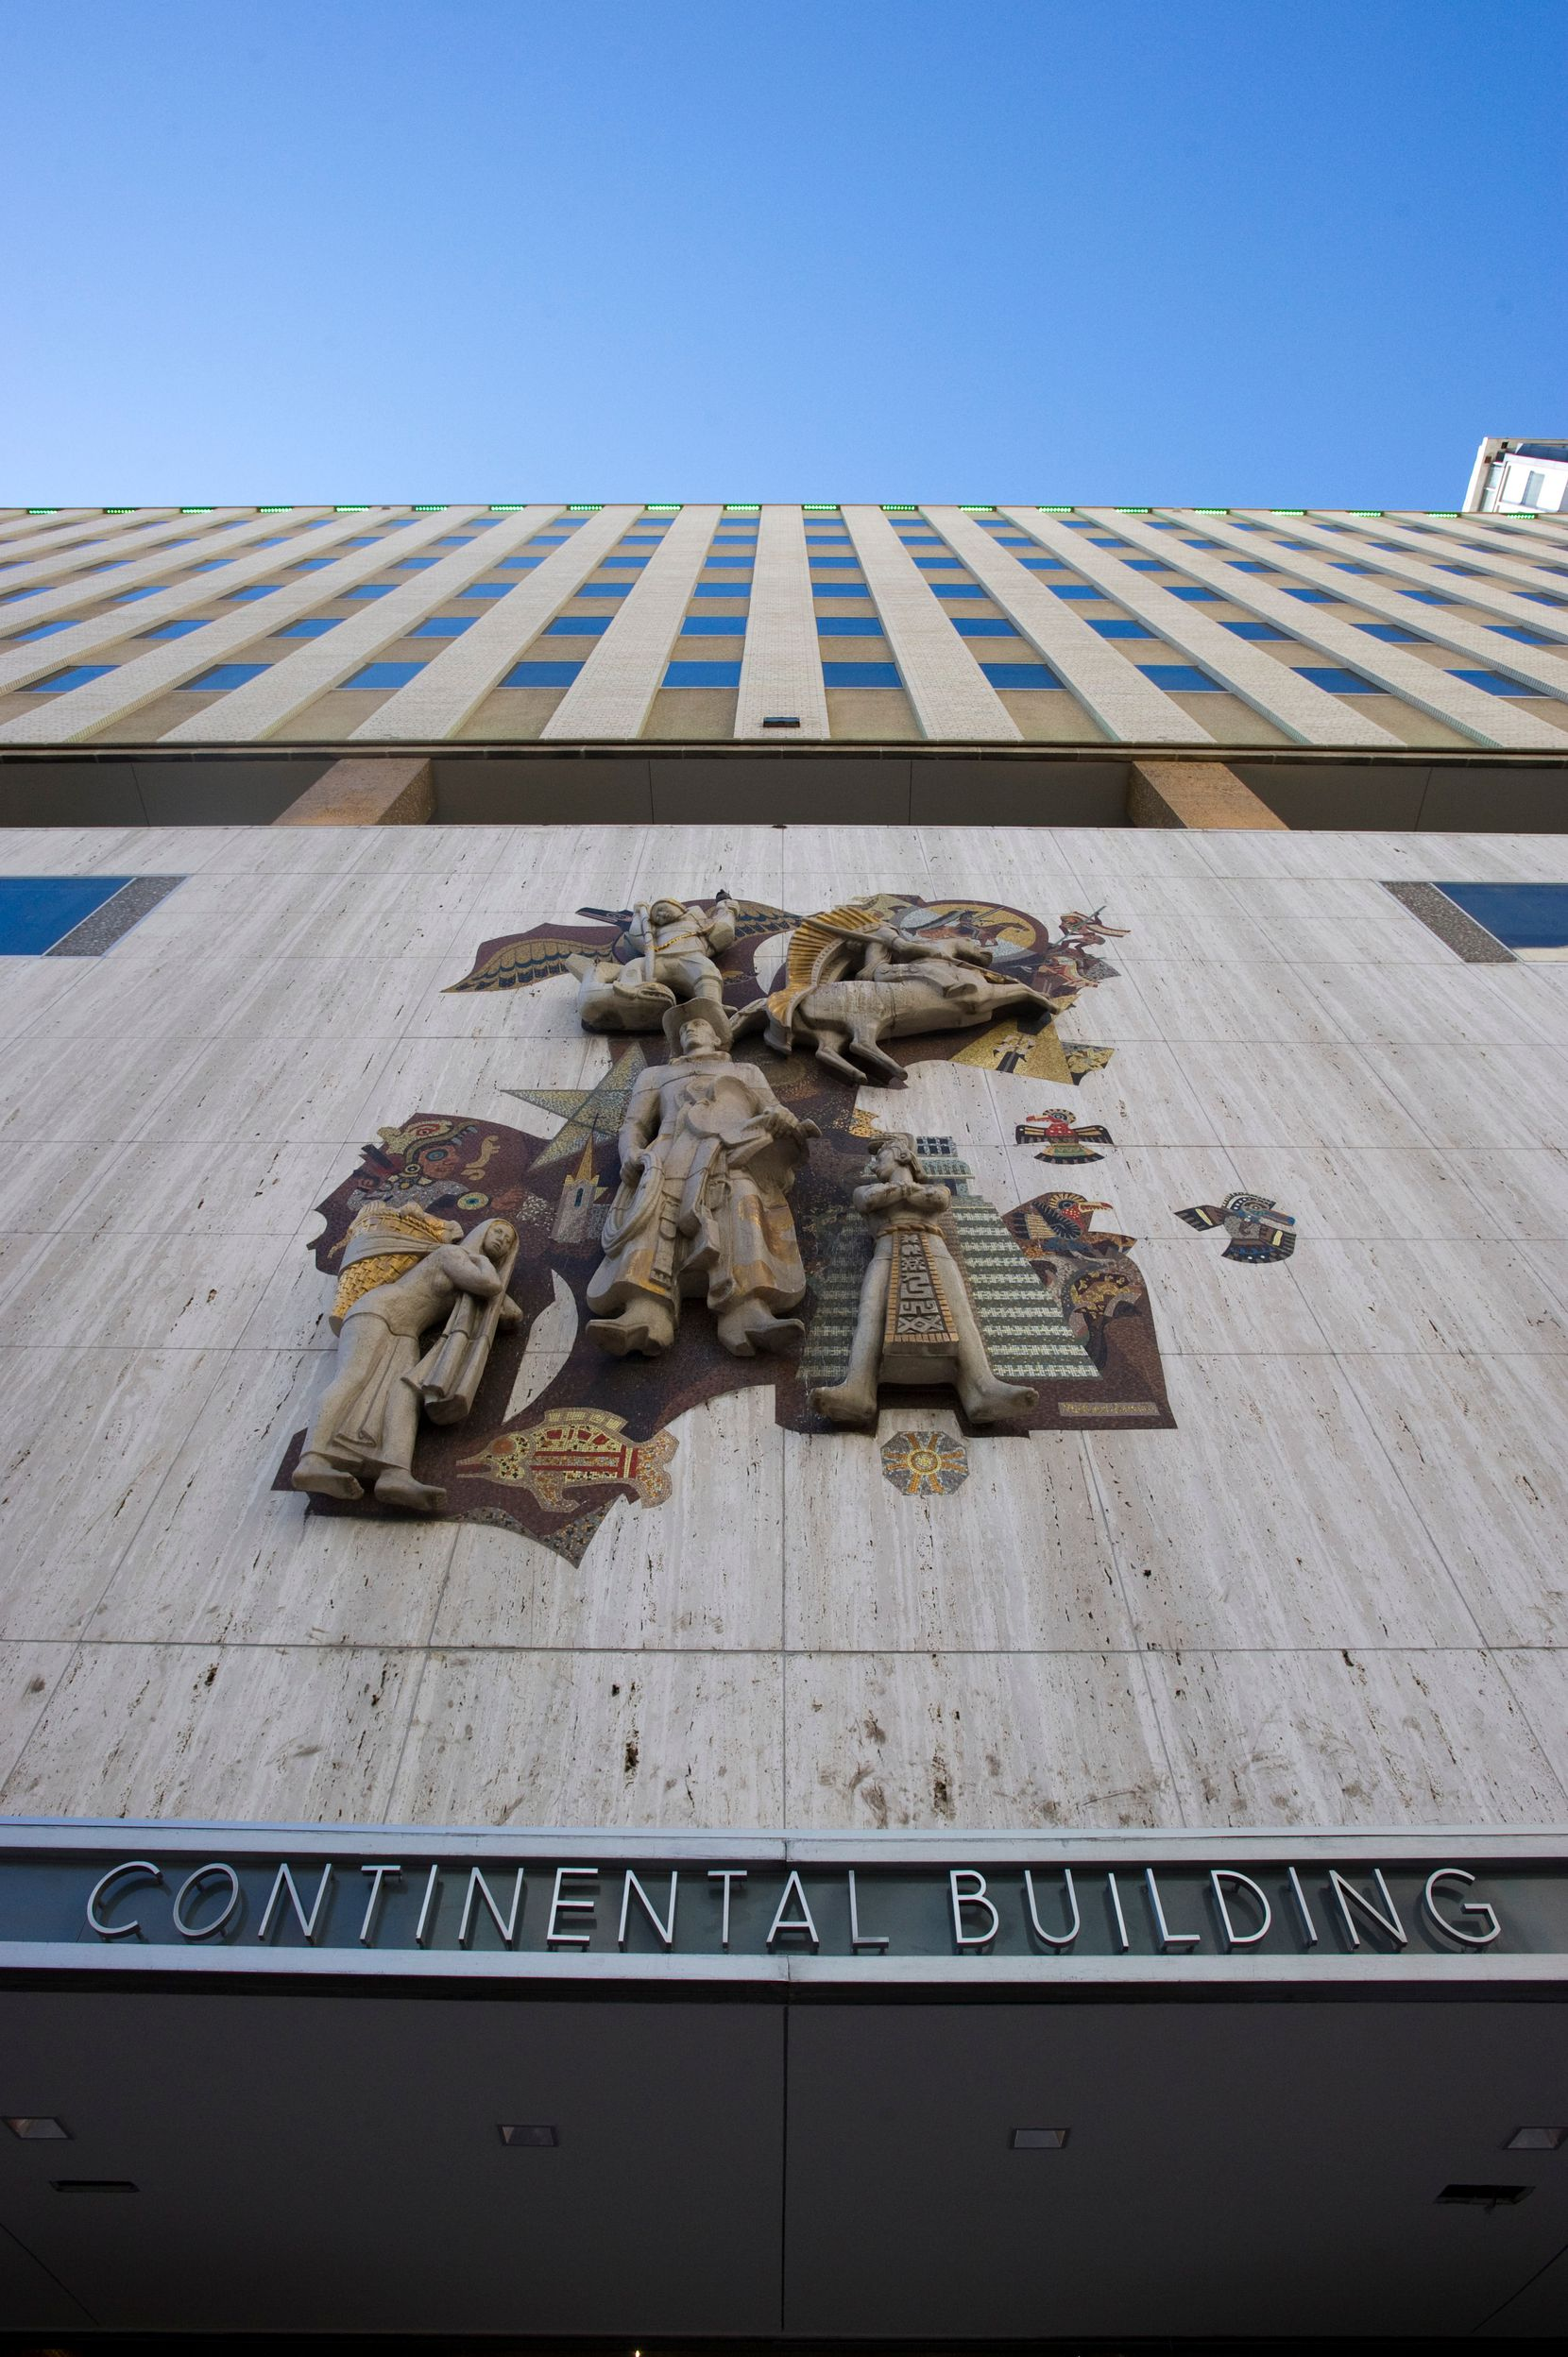 Restoration of the Continental Building and conversion into apartments was one of Dallas' largest such developments in the last 14 years. (File Photo)